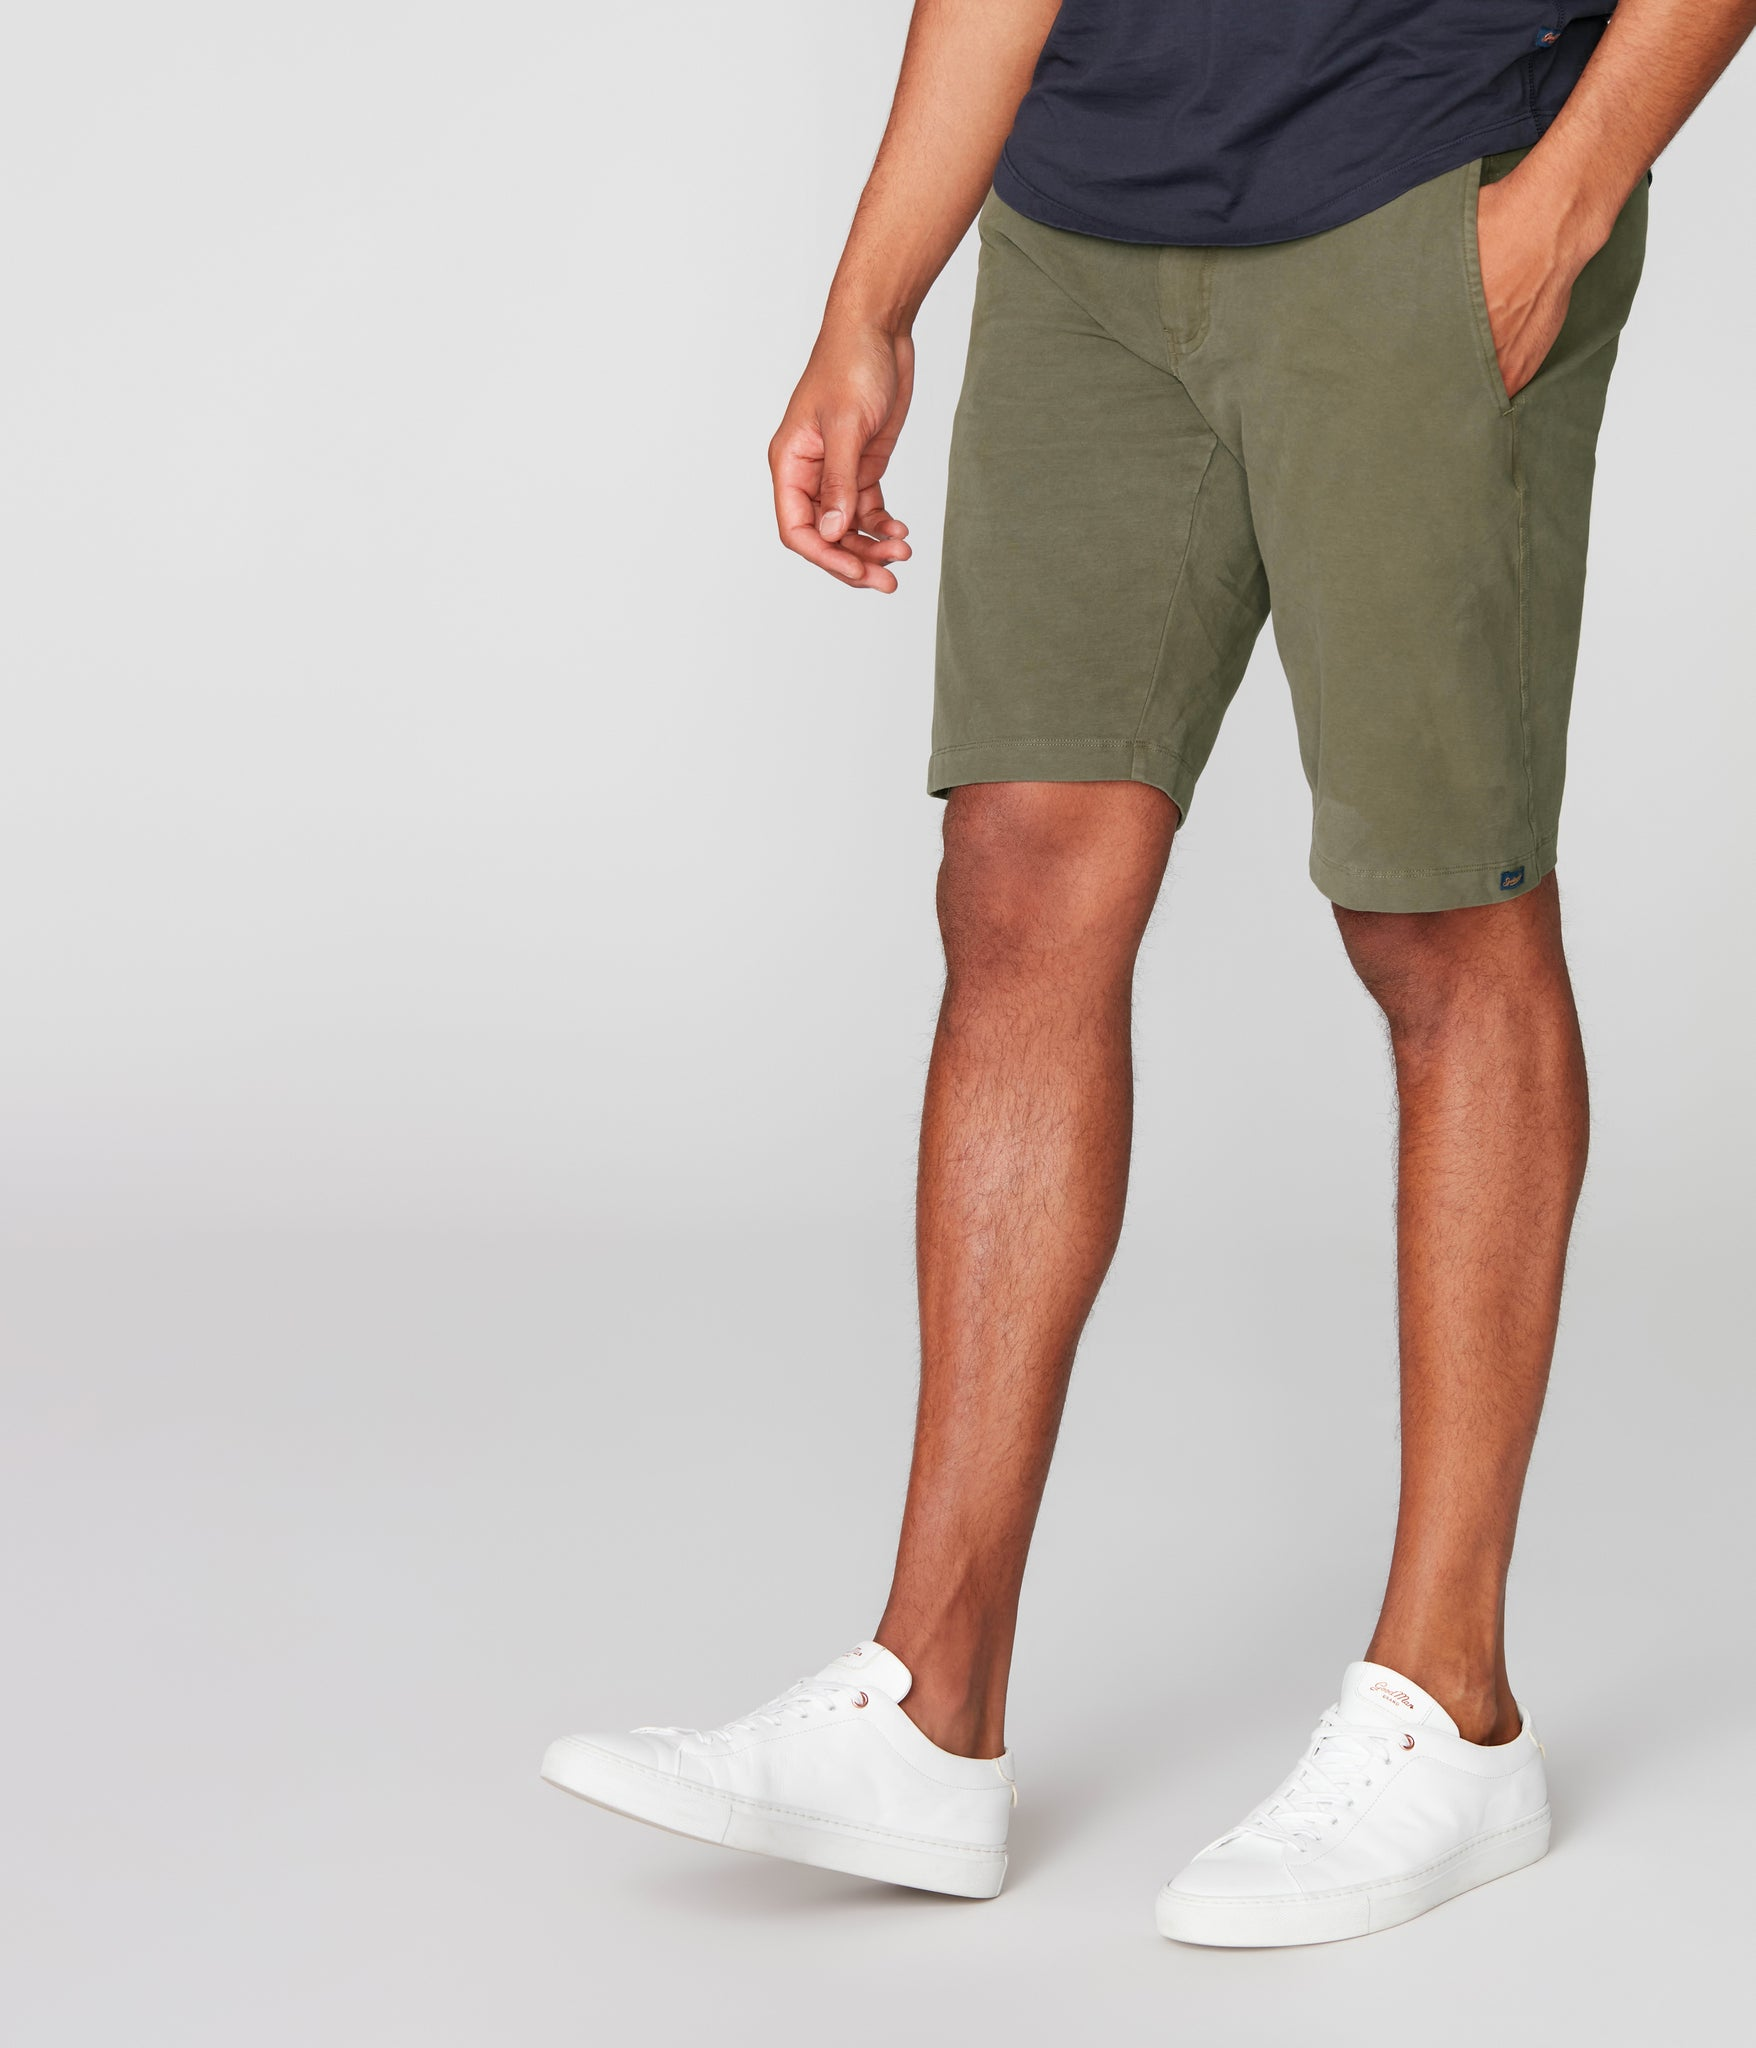 Tulum Trunk in Flex Pro Jersey - Military Green